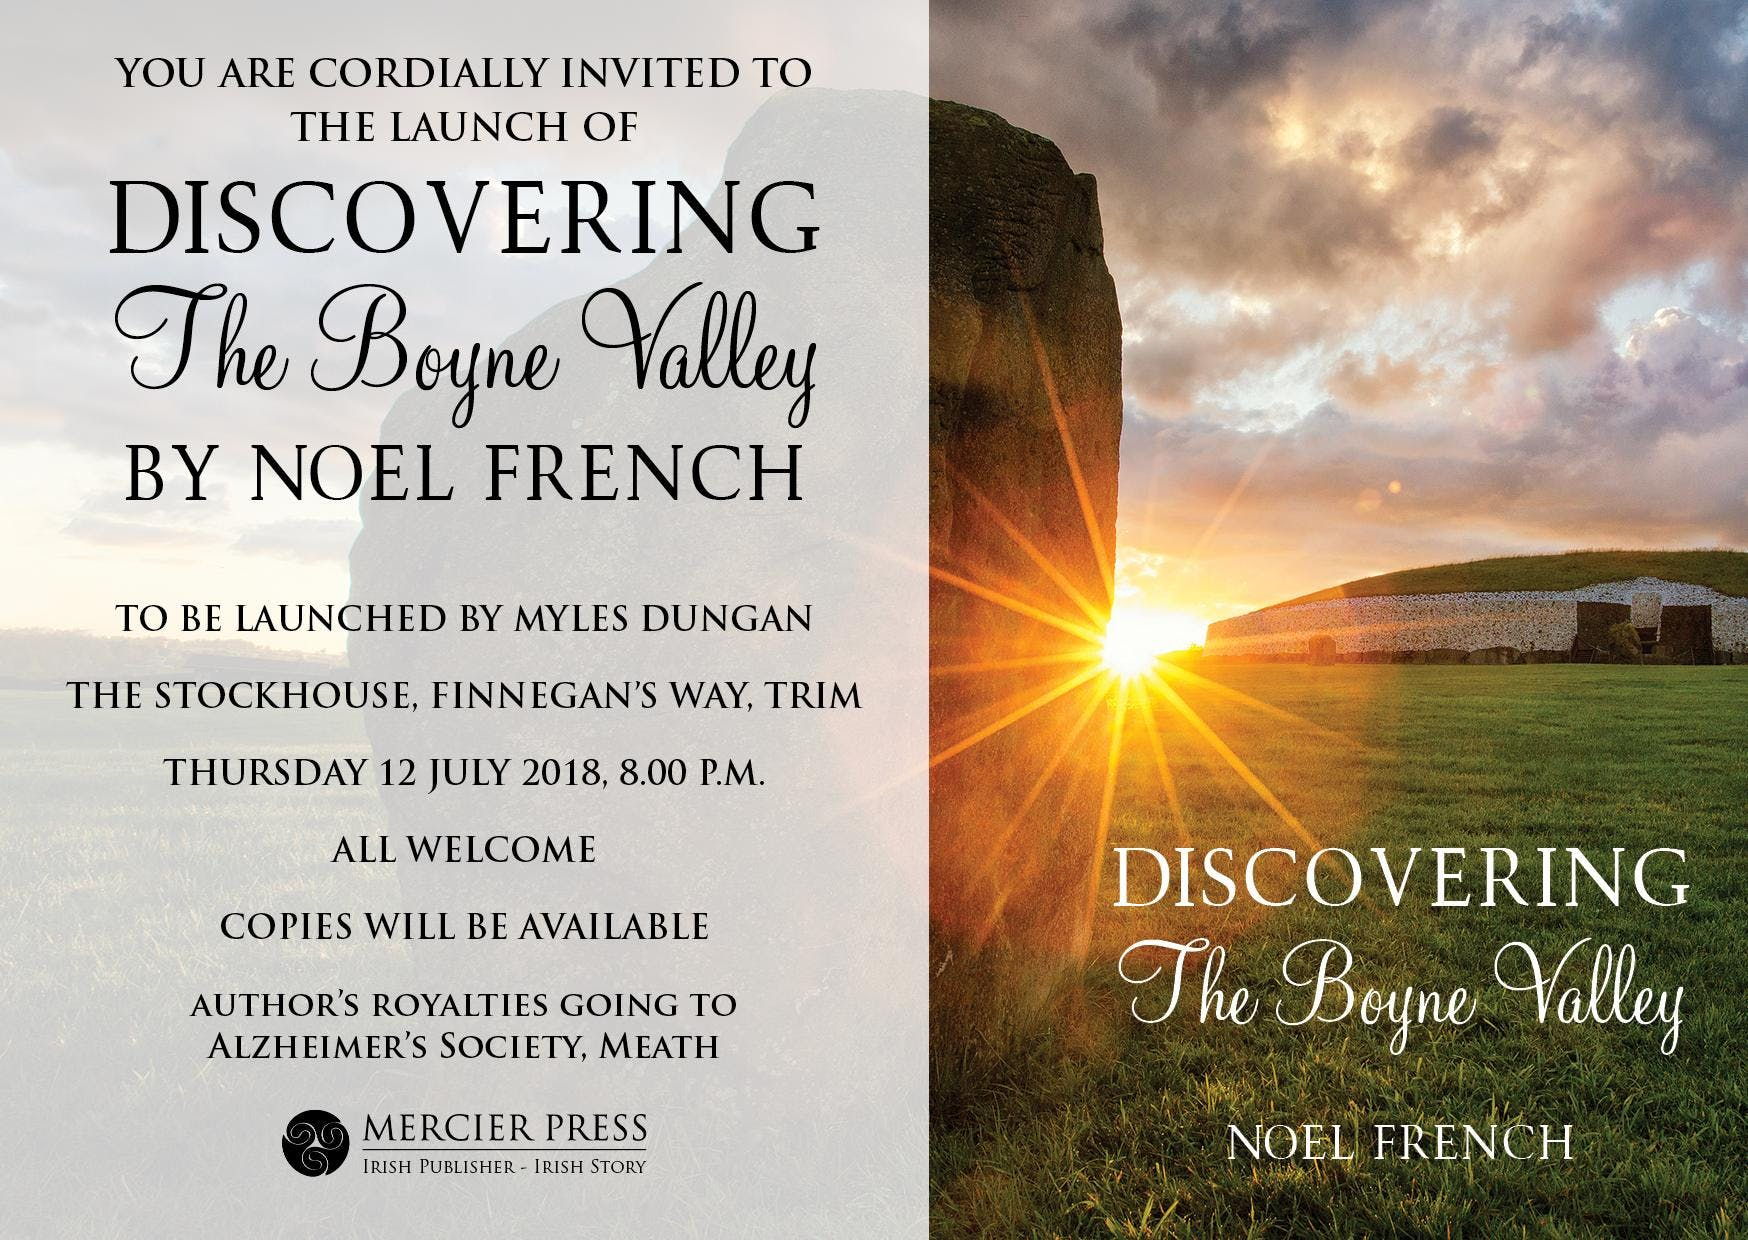 Book Launch - 'Discovering the Boyne Valley' by Noel French